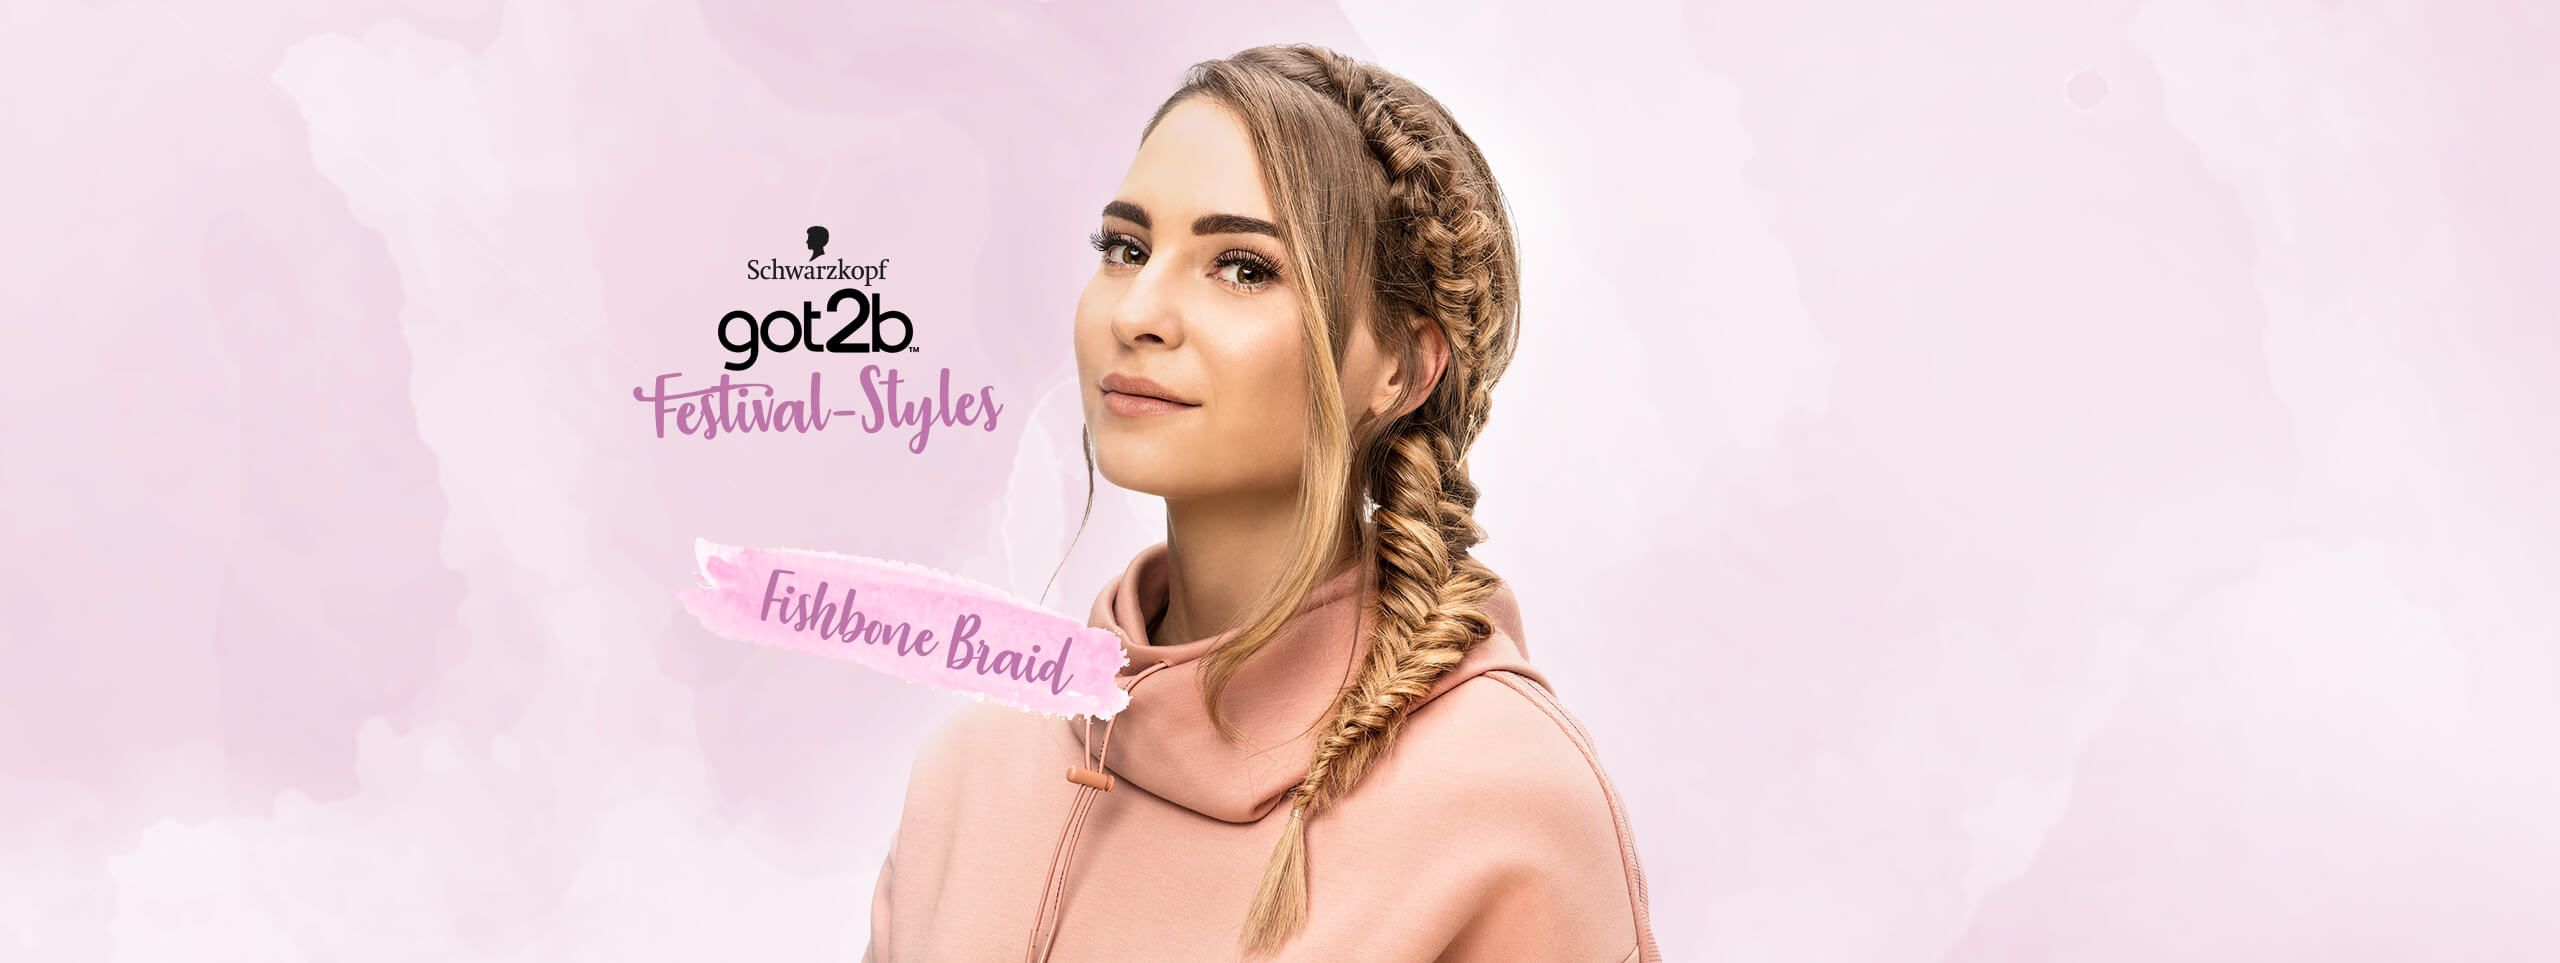 Fishbone Braid – dein lässiger Festival-Look